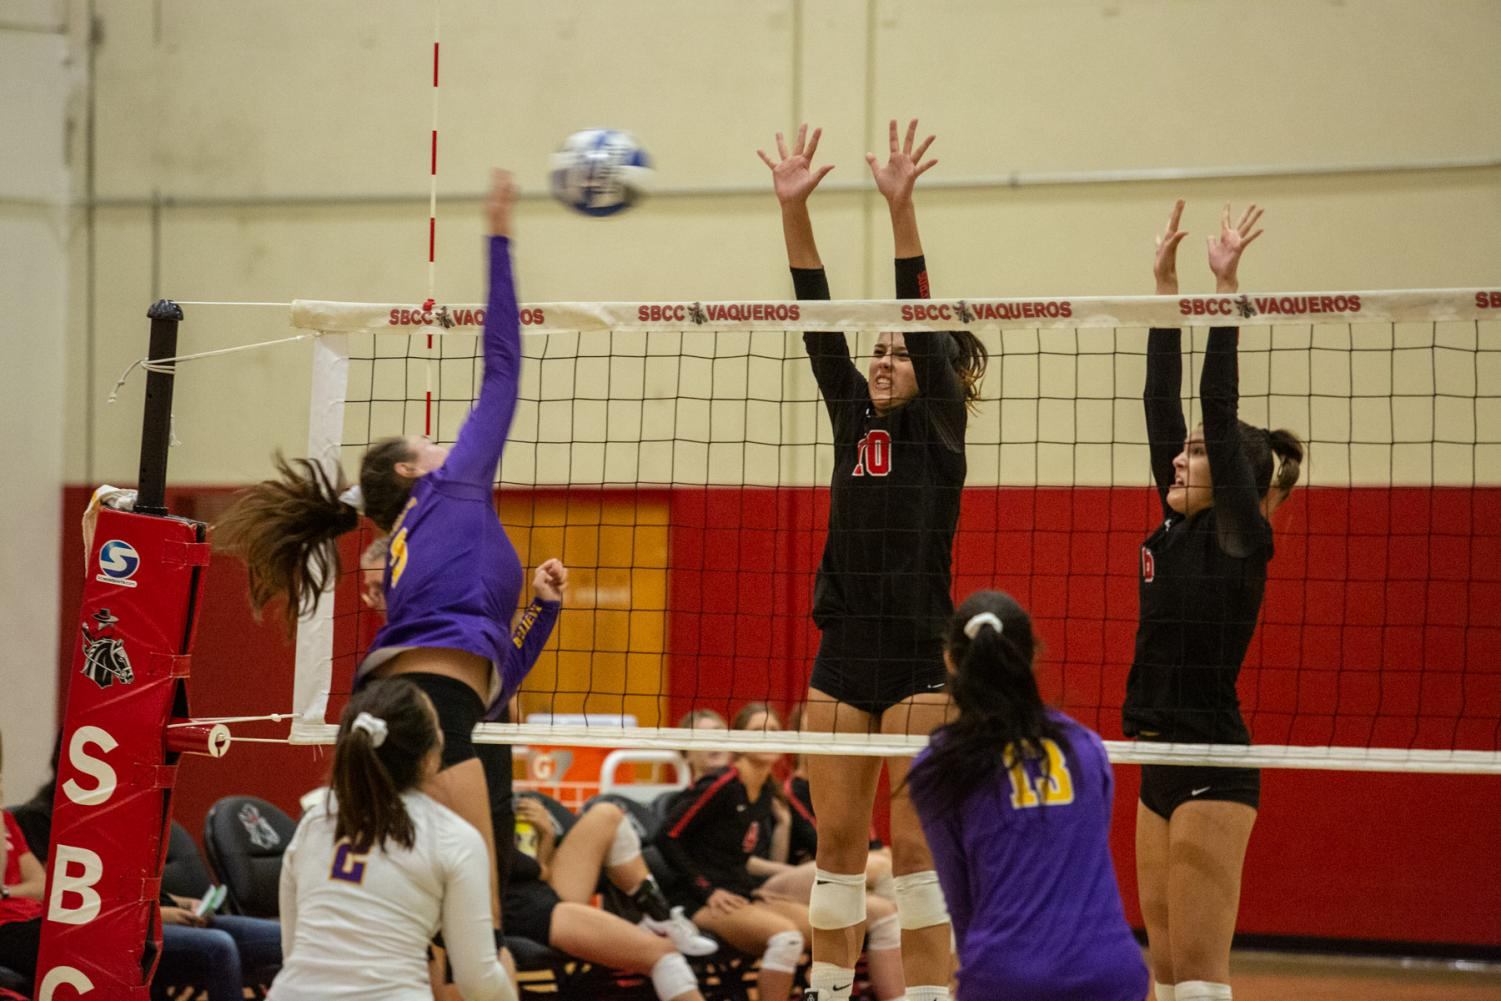 Vaqueros players Gabi Brewer (No.10) and Jordan Falconer (No.6) leap over the net to defend the opponents strike on Tuesday, Oct. 2, 2019, in the Sports Pavilion at City College in Santa Barbara Calif. The Vaqueros beat Cal Lutheran JV 3-0.